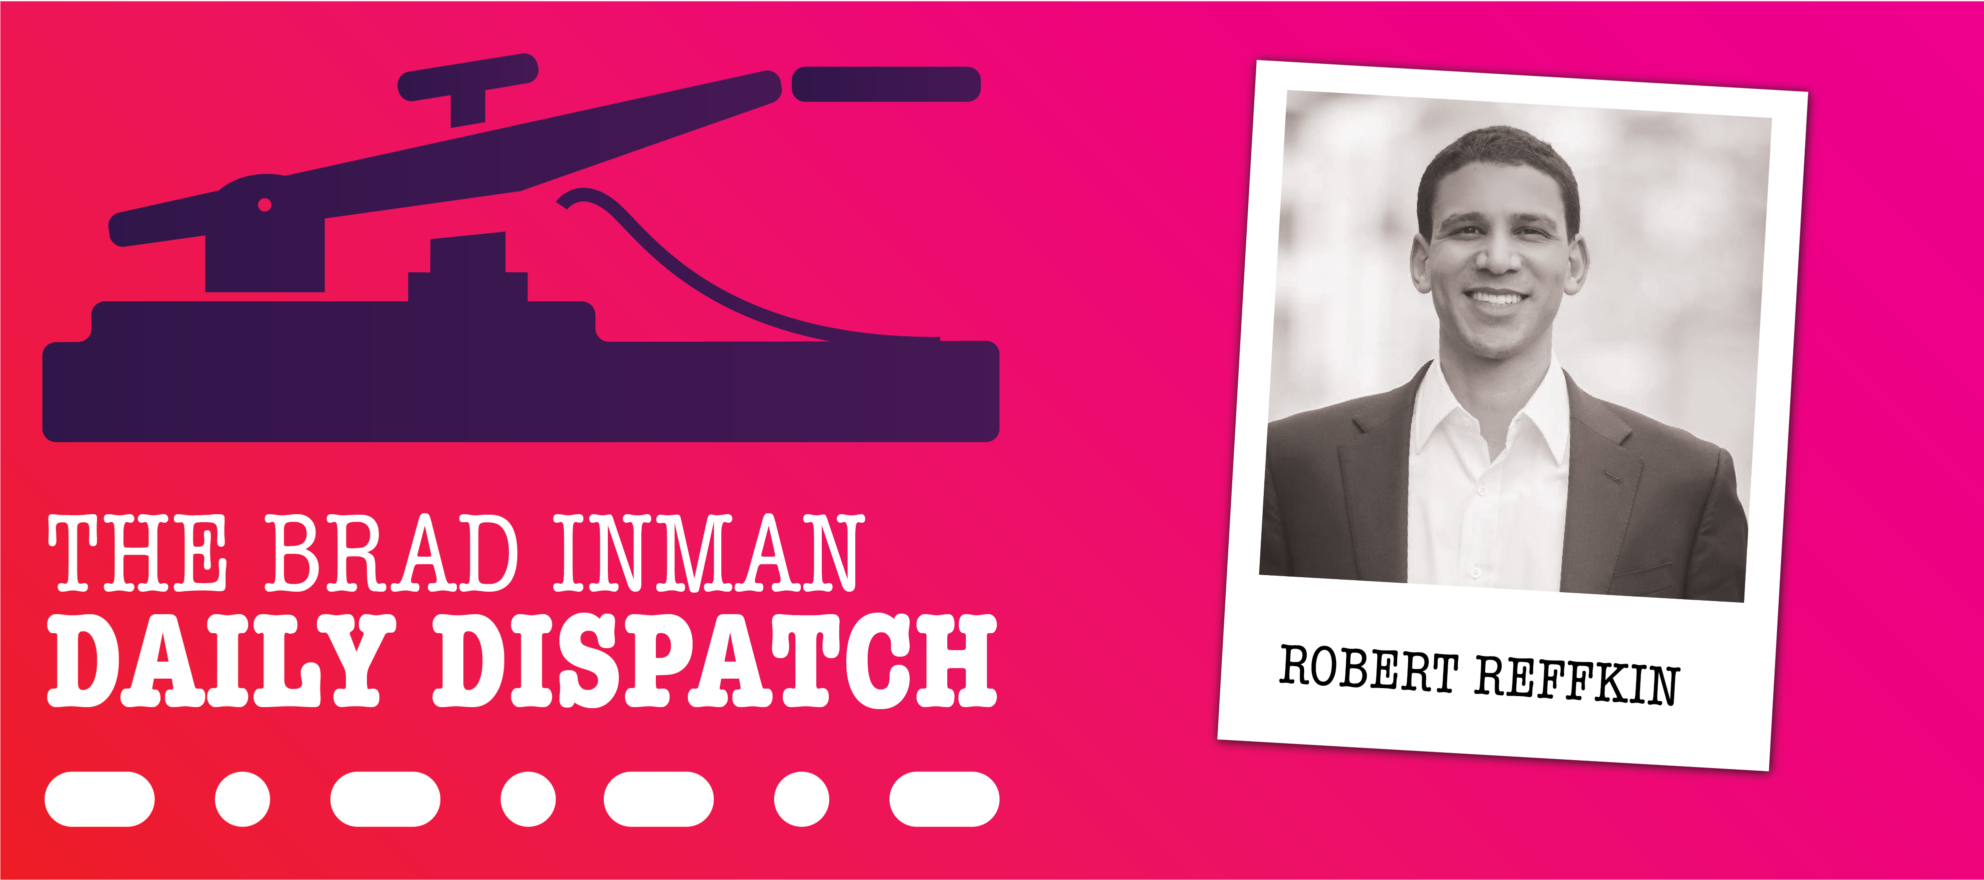 Daily Dispatch: Brad Inman and Compass CEO Robert Reffkin